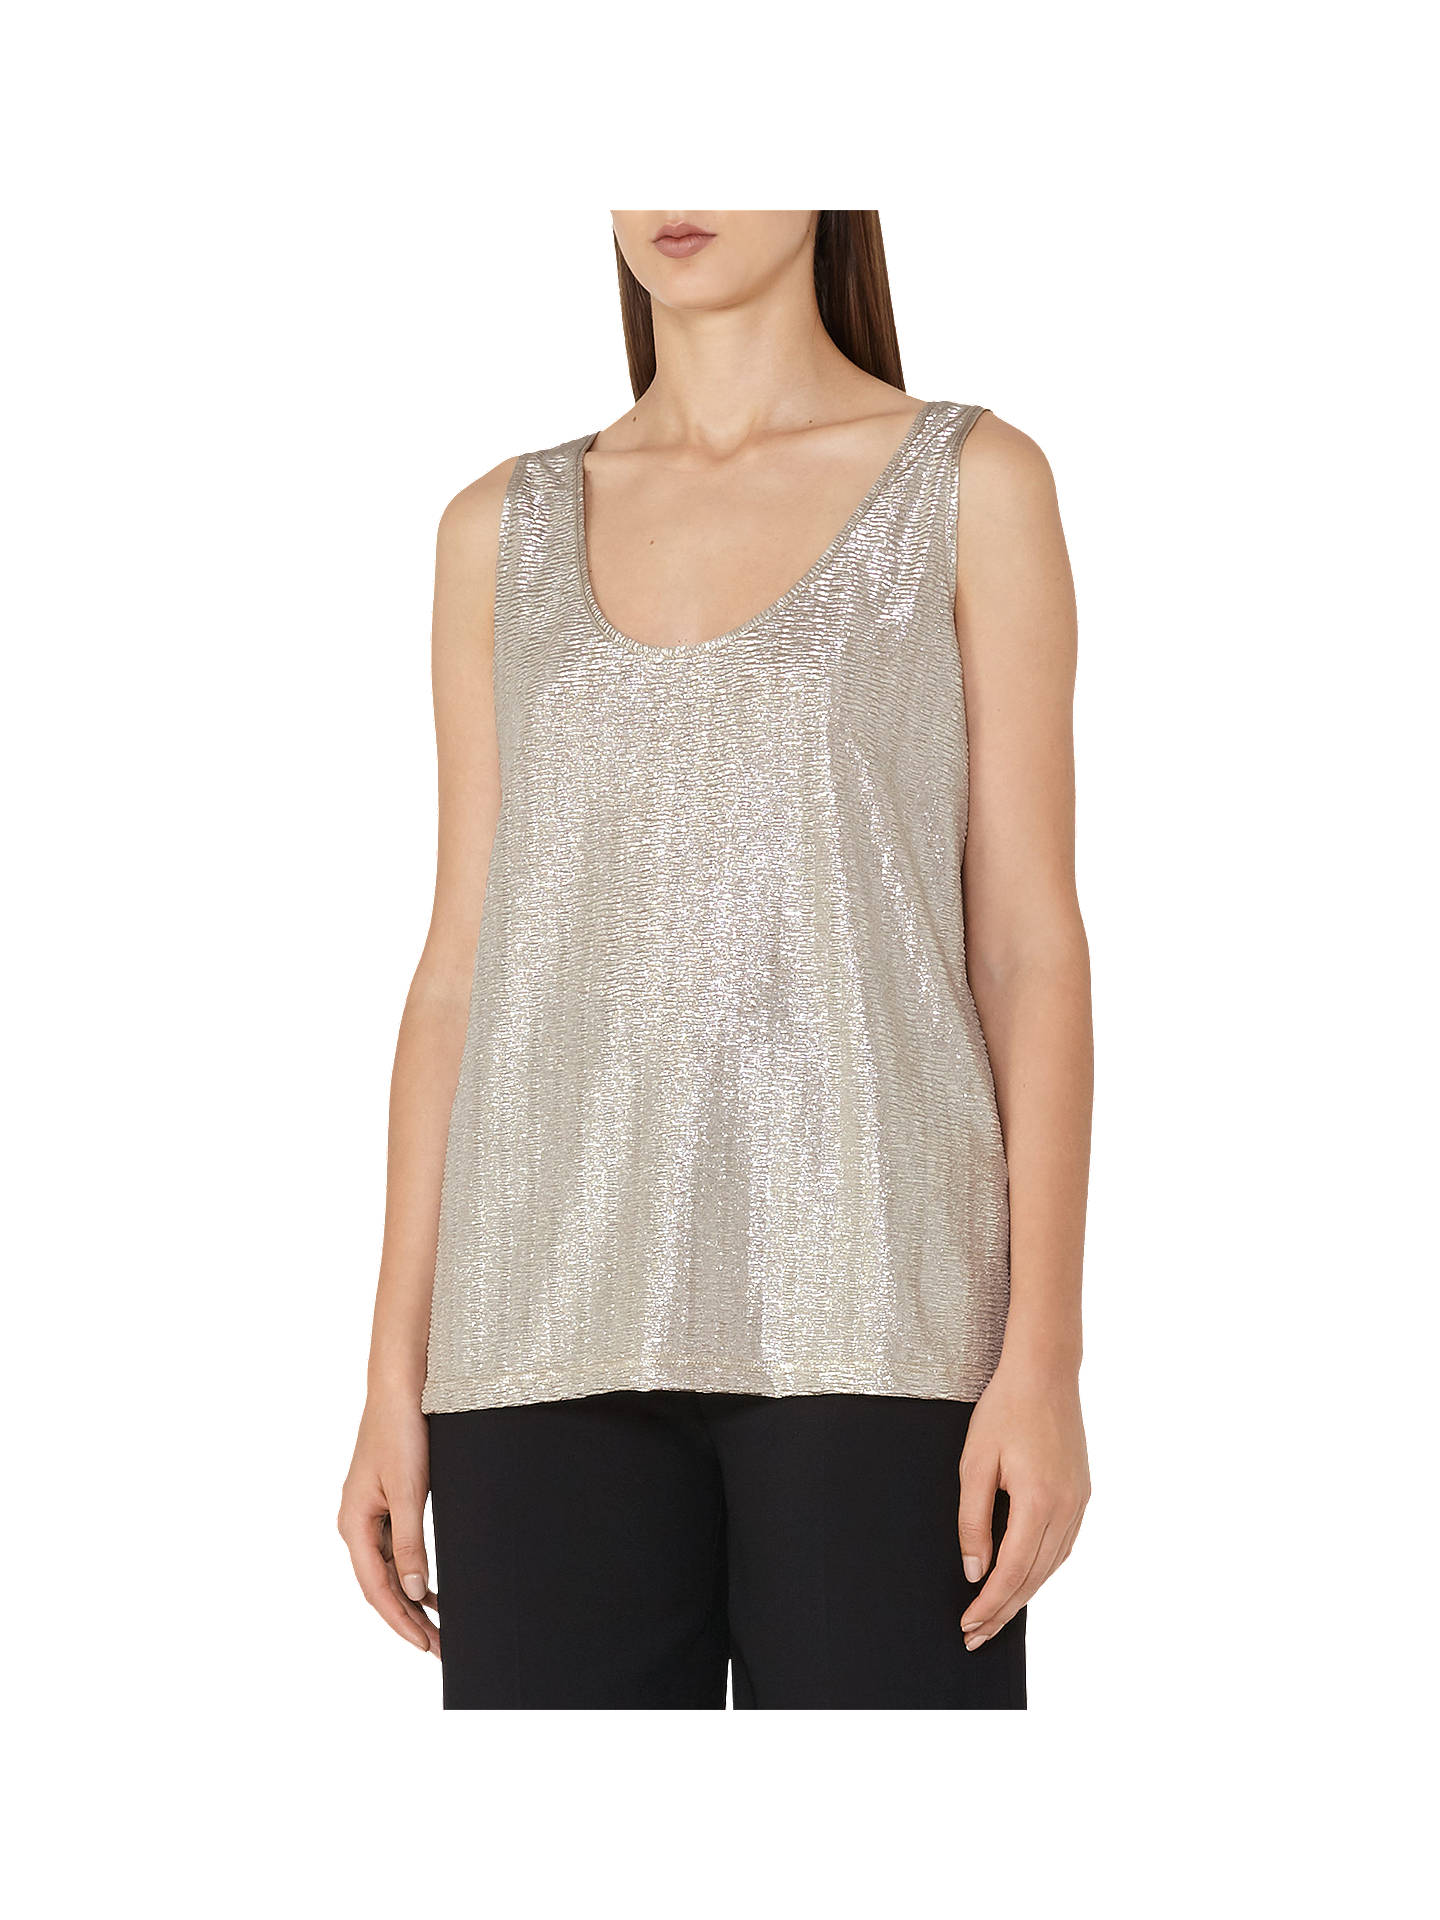 7d30add9f6fc4 Buy Reiss Gemma Metallic Front Vest Top